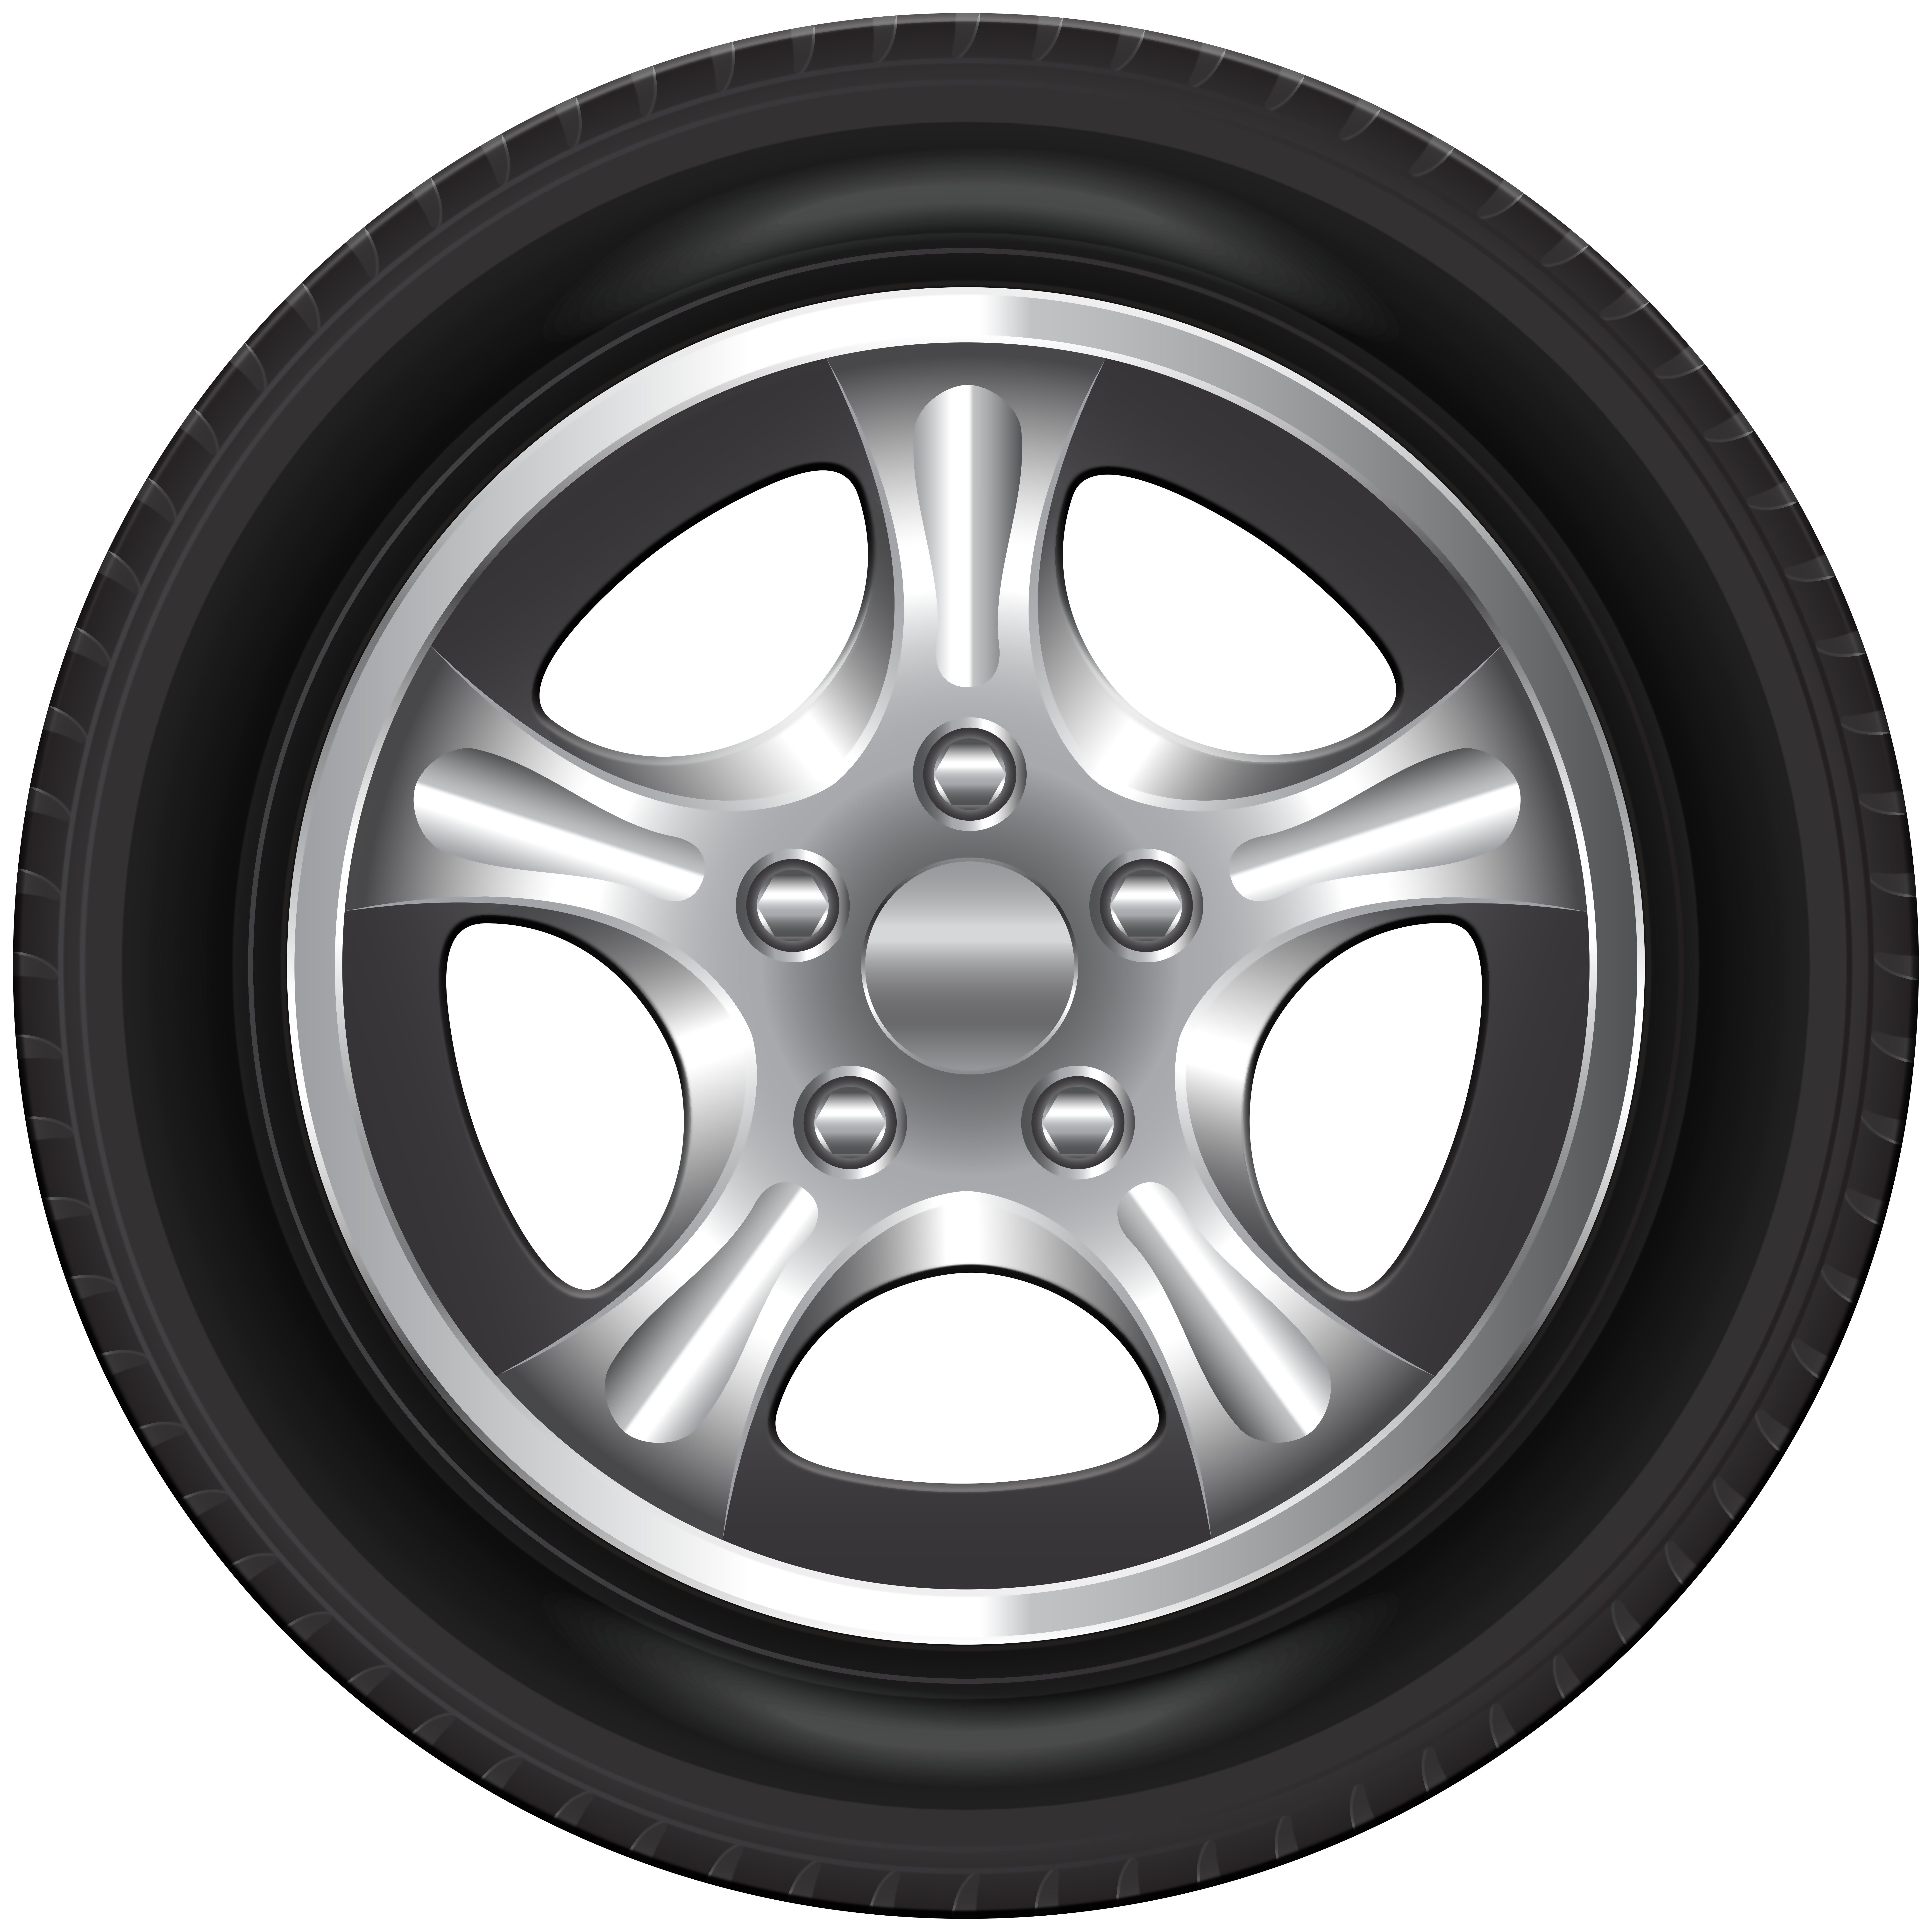 png royalty free download Png clip art best. Tire clipart